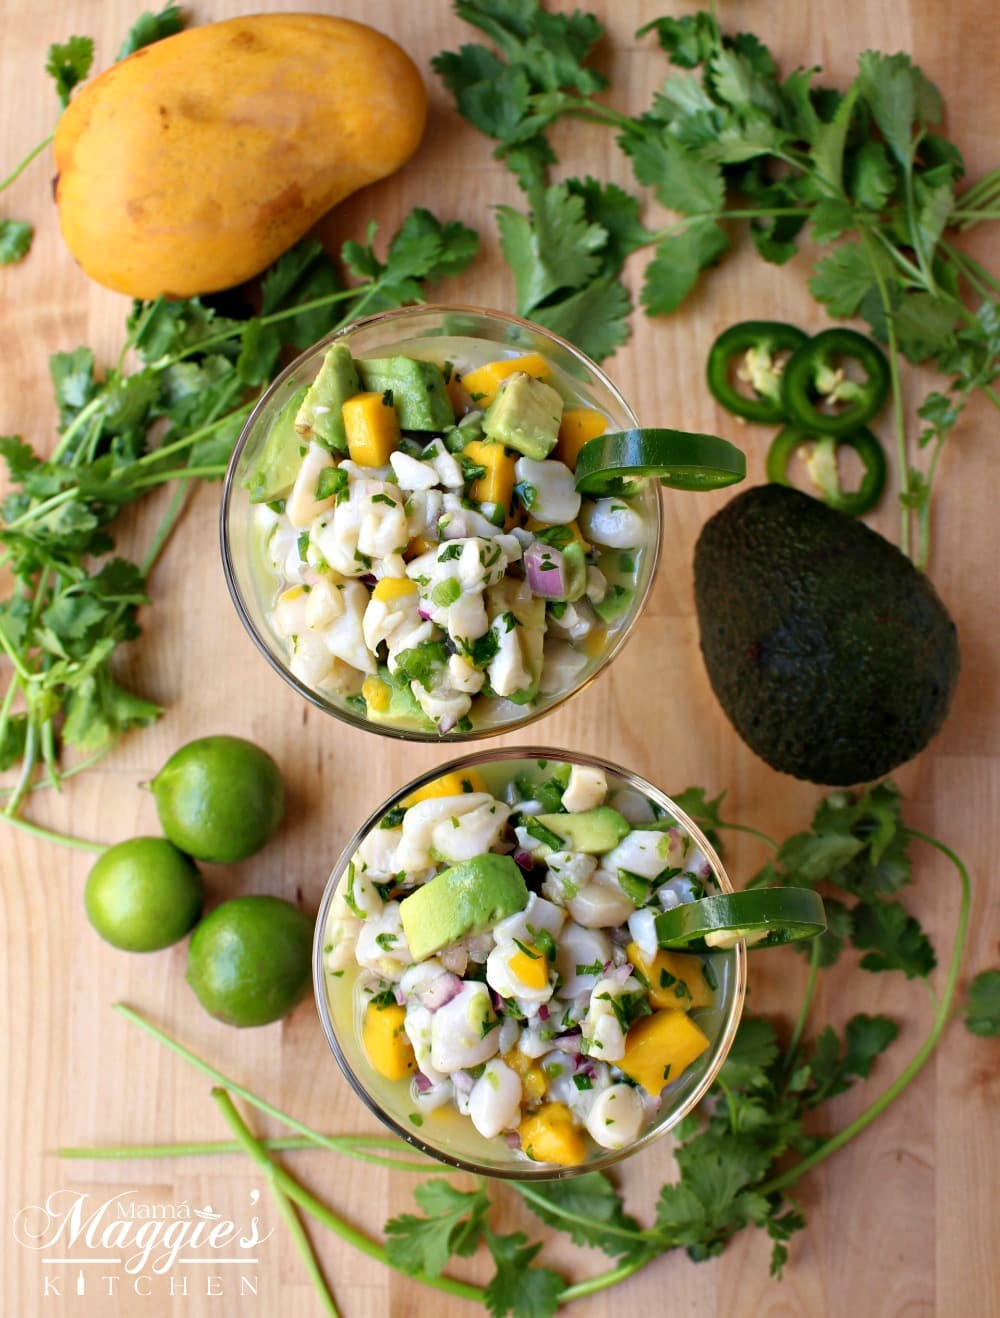 Two champagne glasses filled with scallop ceviche surrounded by cilantro, lime, avocado, and mango.